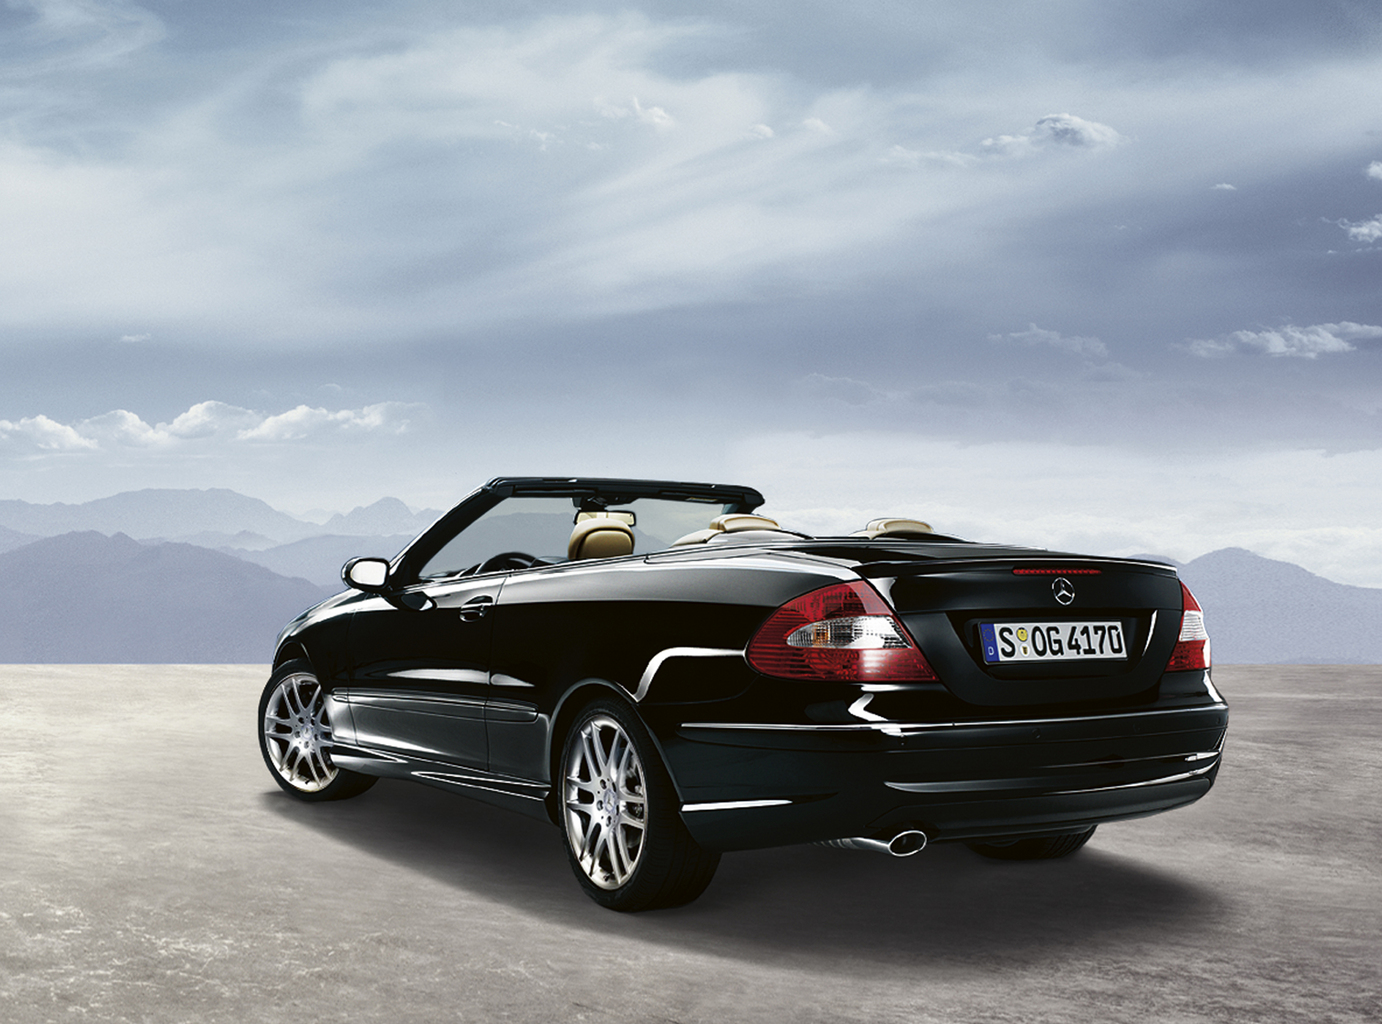 Mercedes Clk Cabrio Auto Wallpapers Groenlicht Be